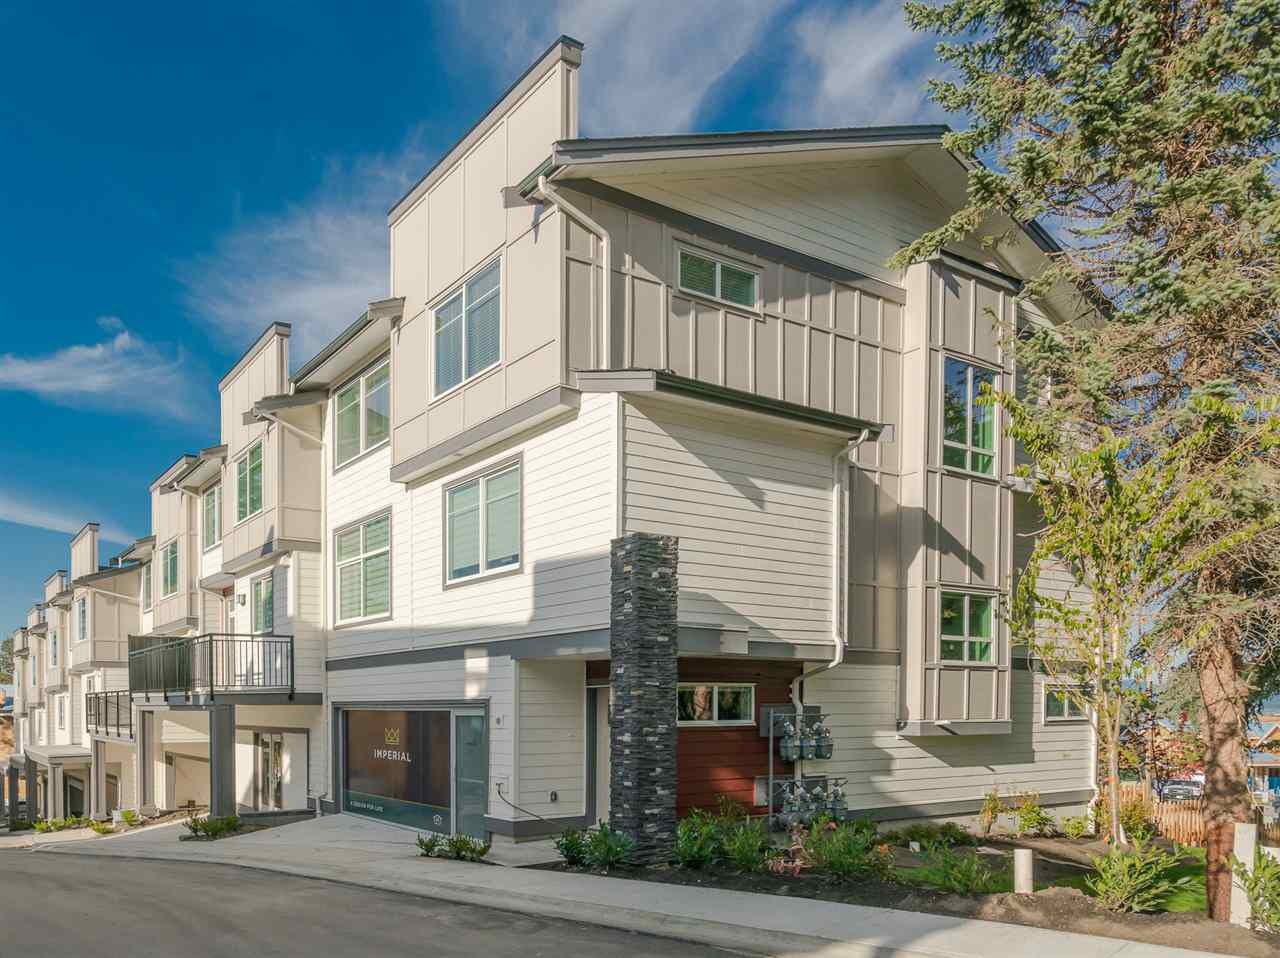 """Main Photo: 8 15633 MOUNTAIN VIEW Drive in Surrey: Grandview Surrey Townhouse for sale in """"Imperial"""" (South Surrey White Rock)  : MLS®# R2212553"""